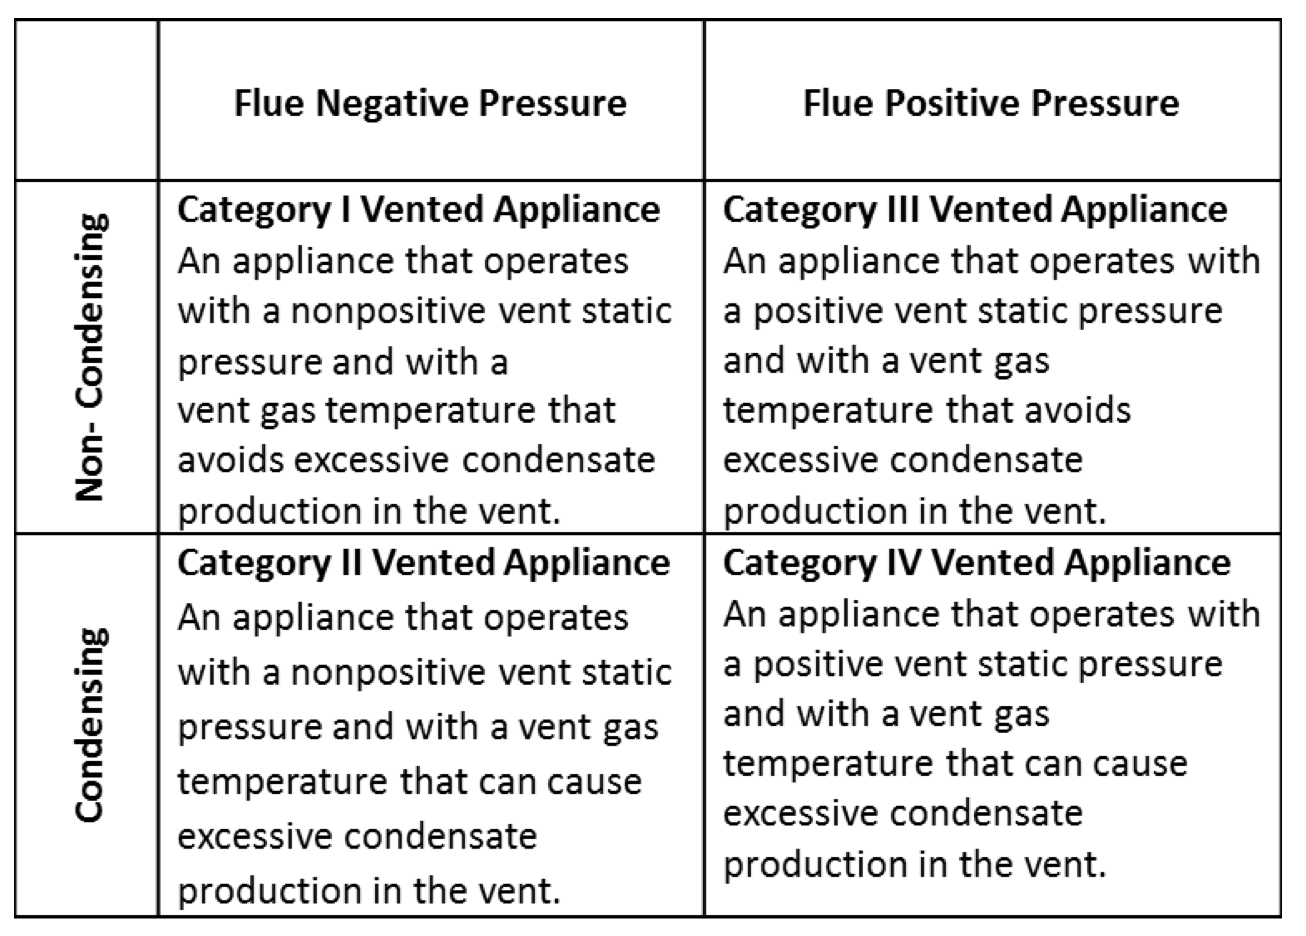 Inspecting Gas Fired Boilers Internachi Piping Hydronic Boiler System Besides Electric Water Heater Circuit The National Fuel Code Nfpa 54 Uses Four Categories For Combustion Furnaces And Heaters Based On Type Sealed Or Unsealed Vent Pipe